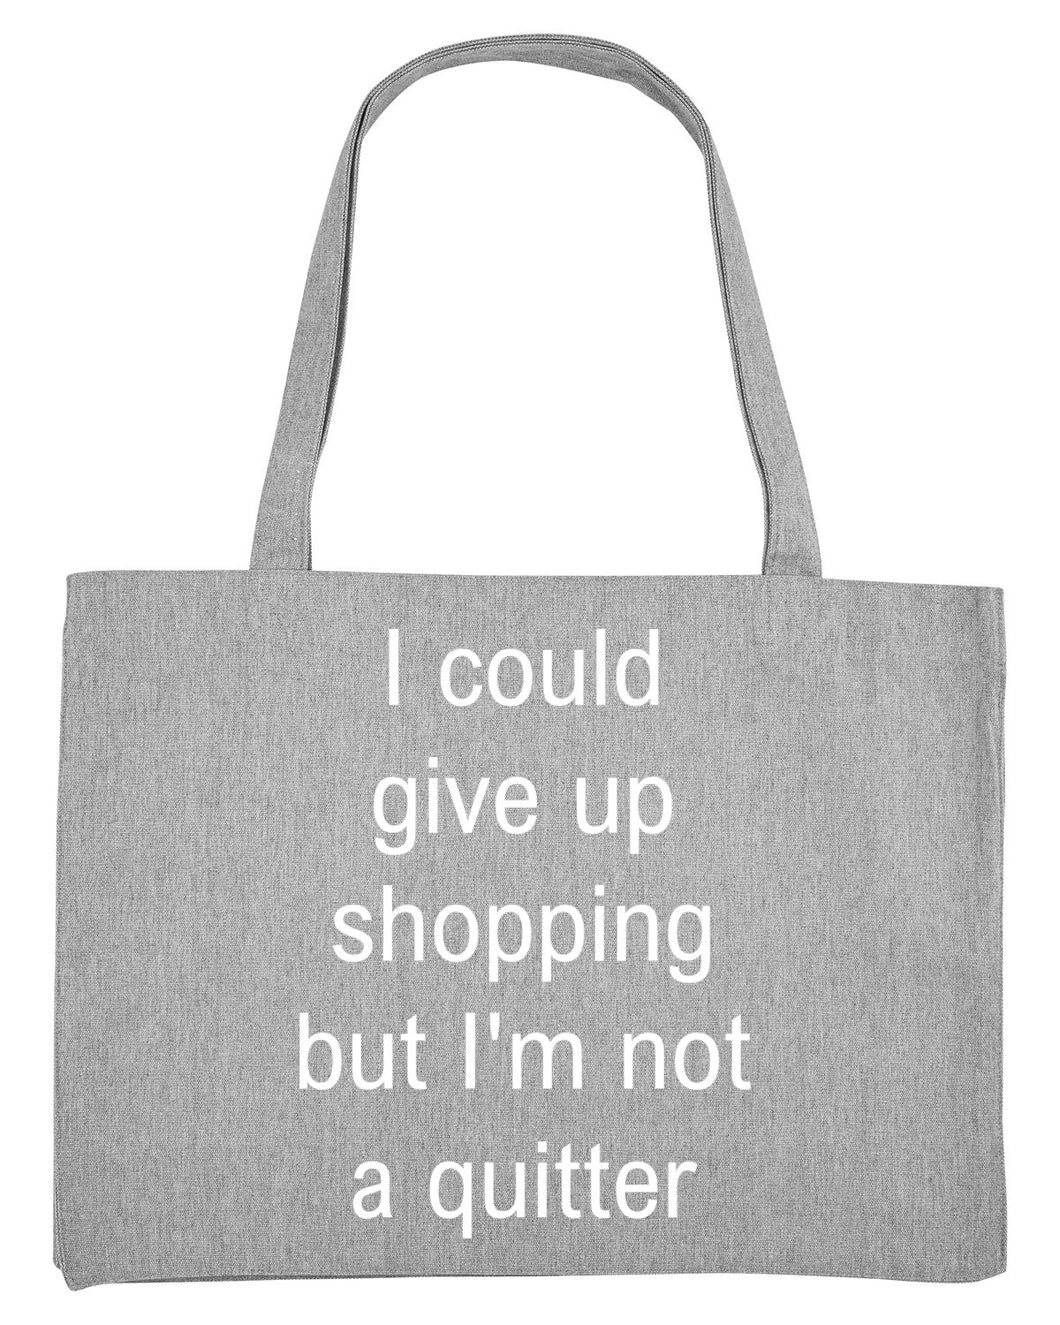 Tote bag - I could give up shopping but I'm not a quitter